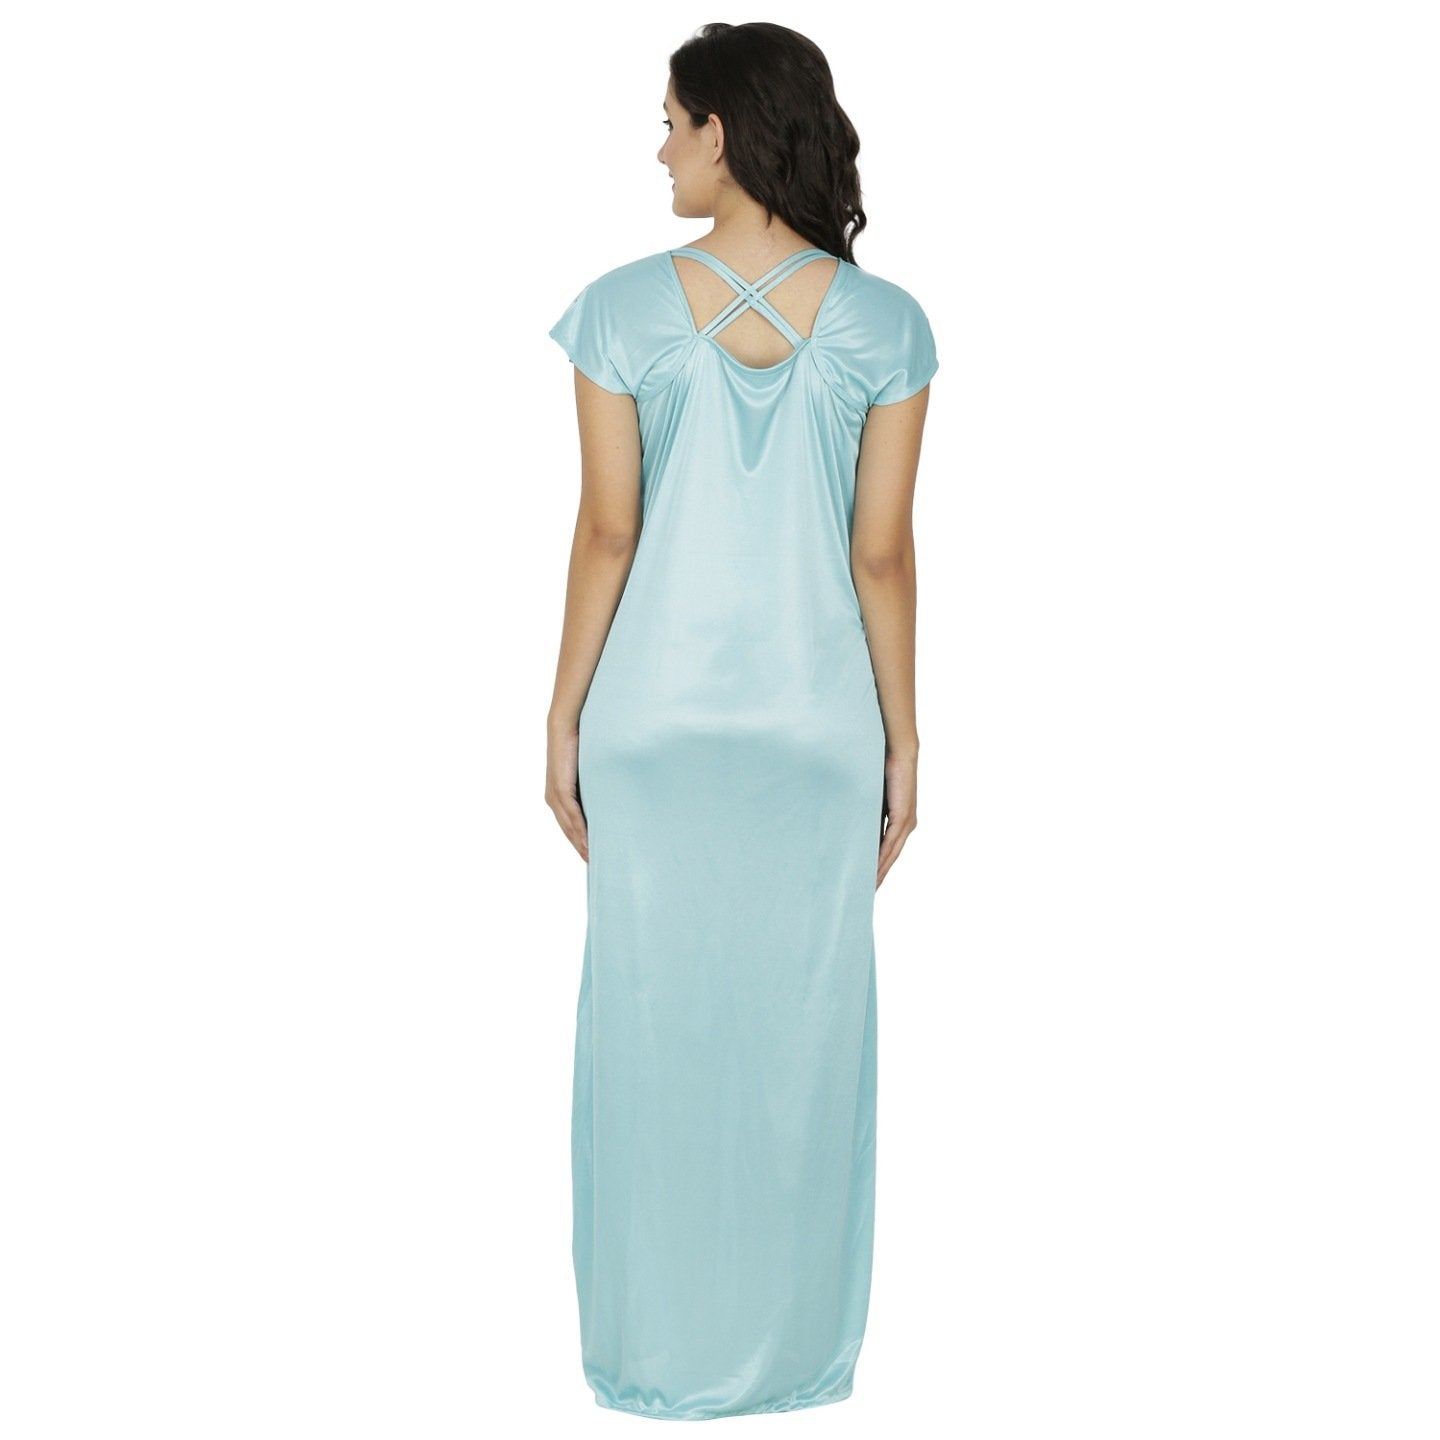 Klamotten_long nightdress_X10_Sea